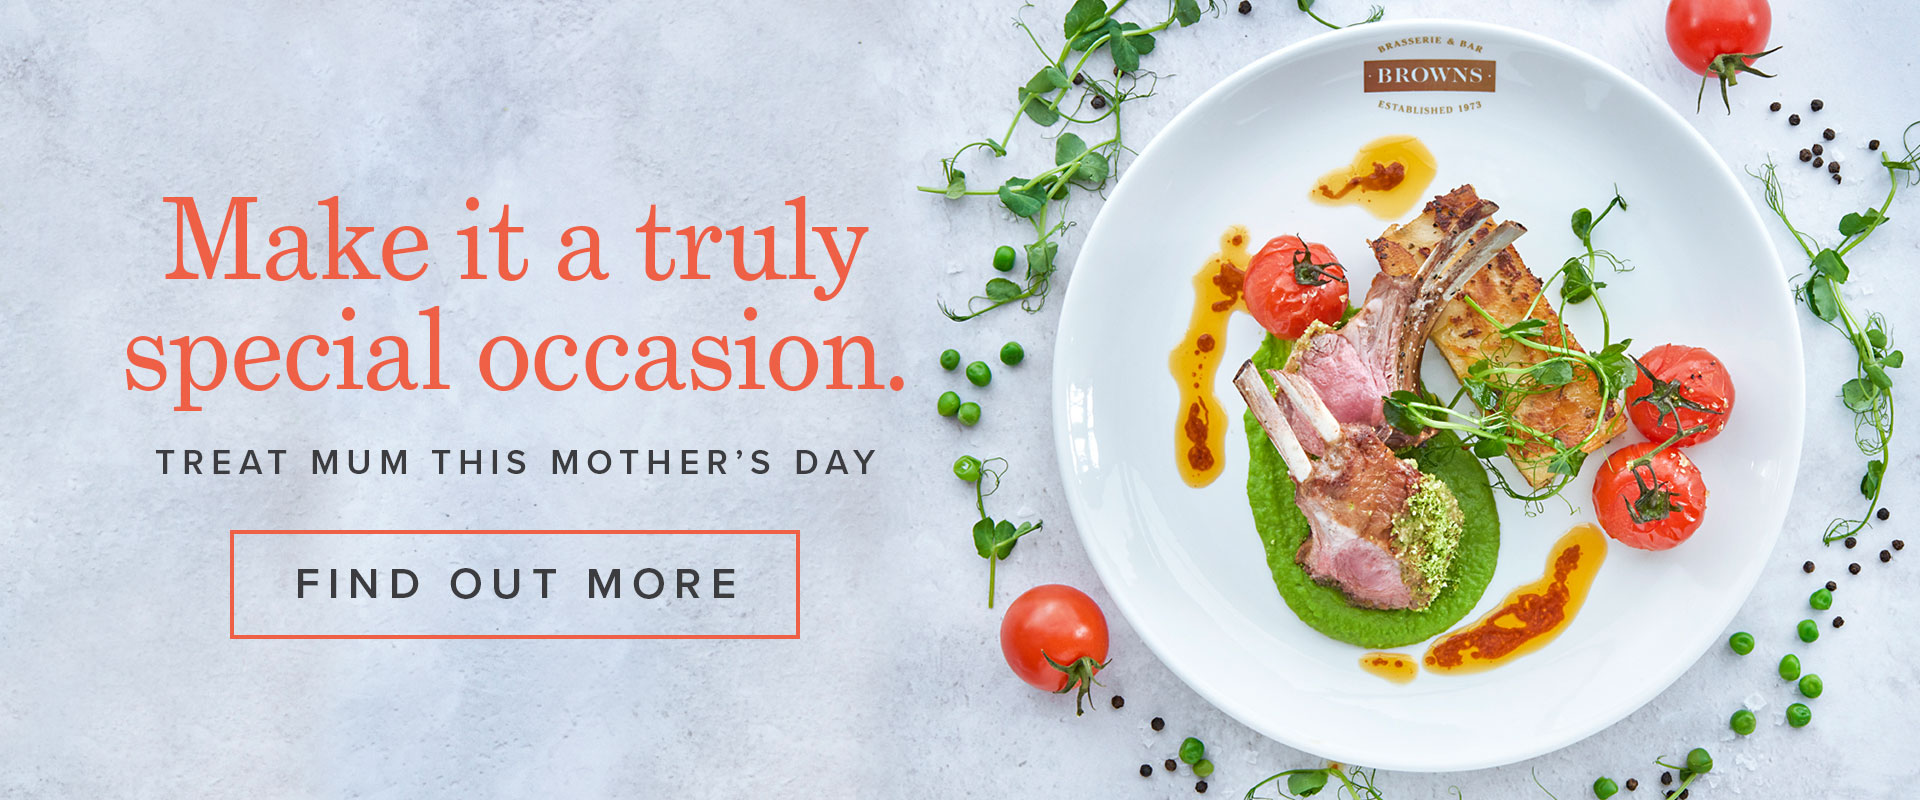 Mother's Day 2019 at Browns Cambridge